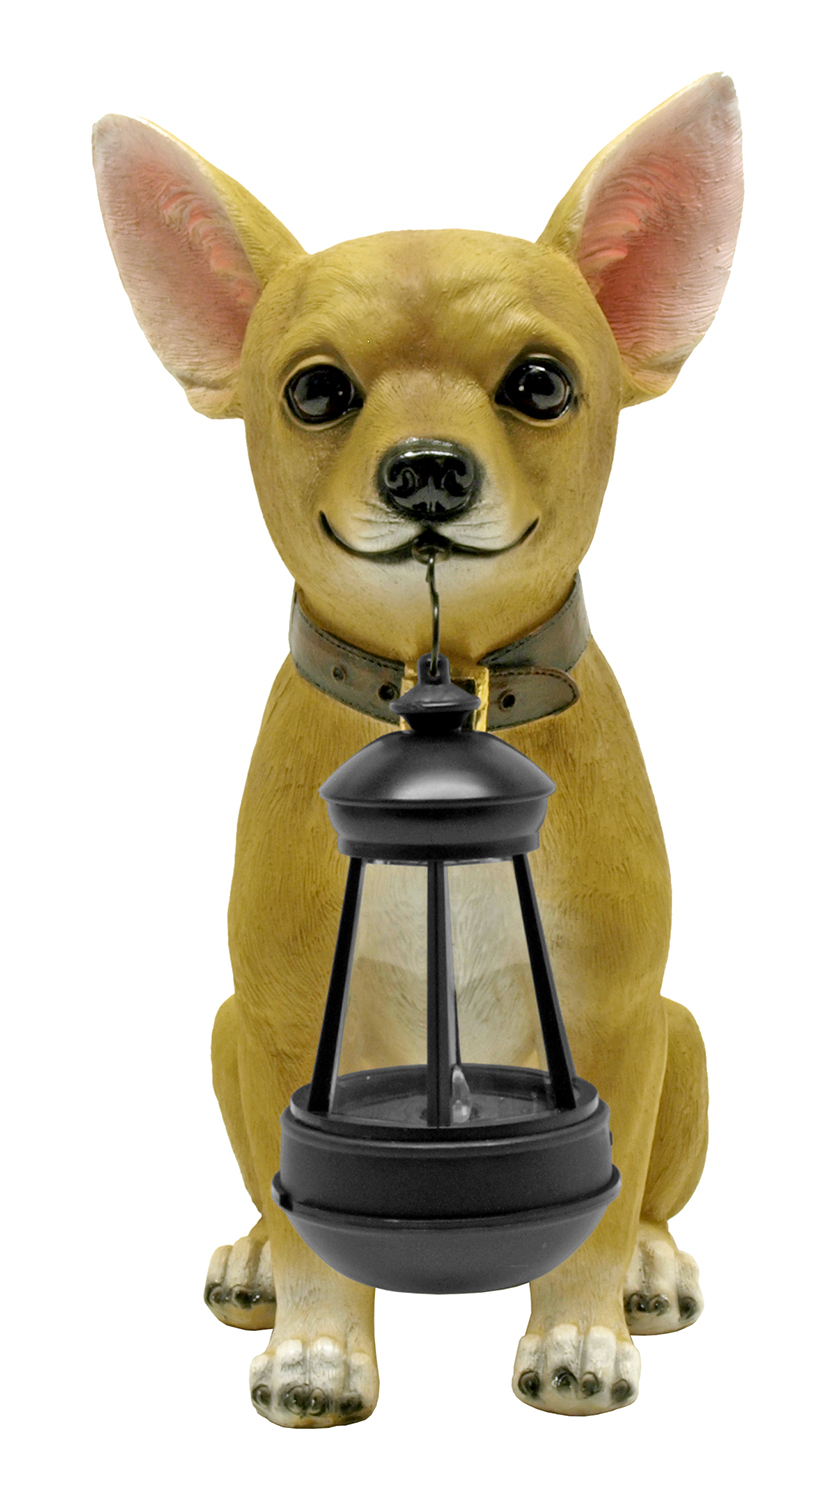 Little Light Keeper - Chihuahua Statue Figurine with Solar Lantern